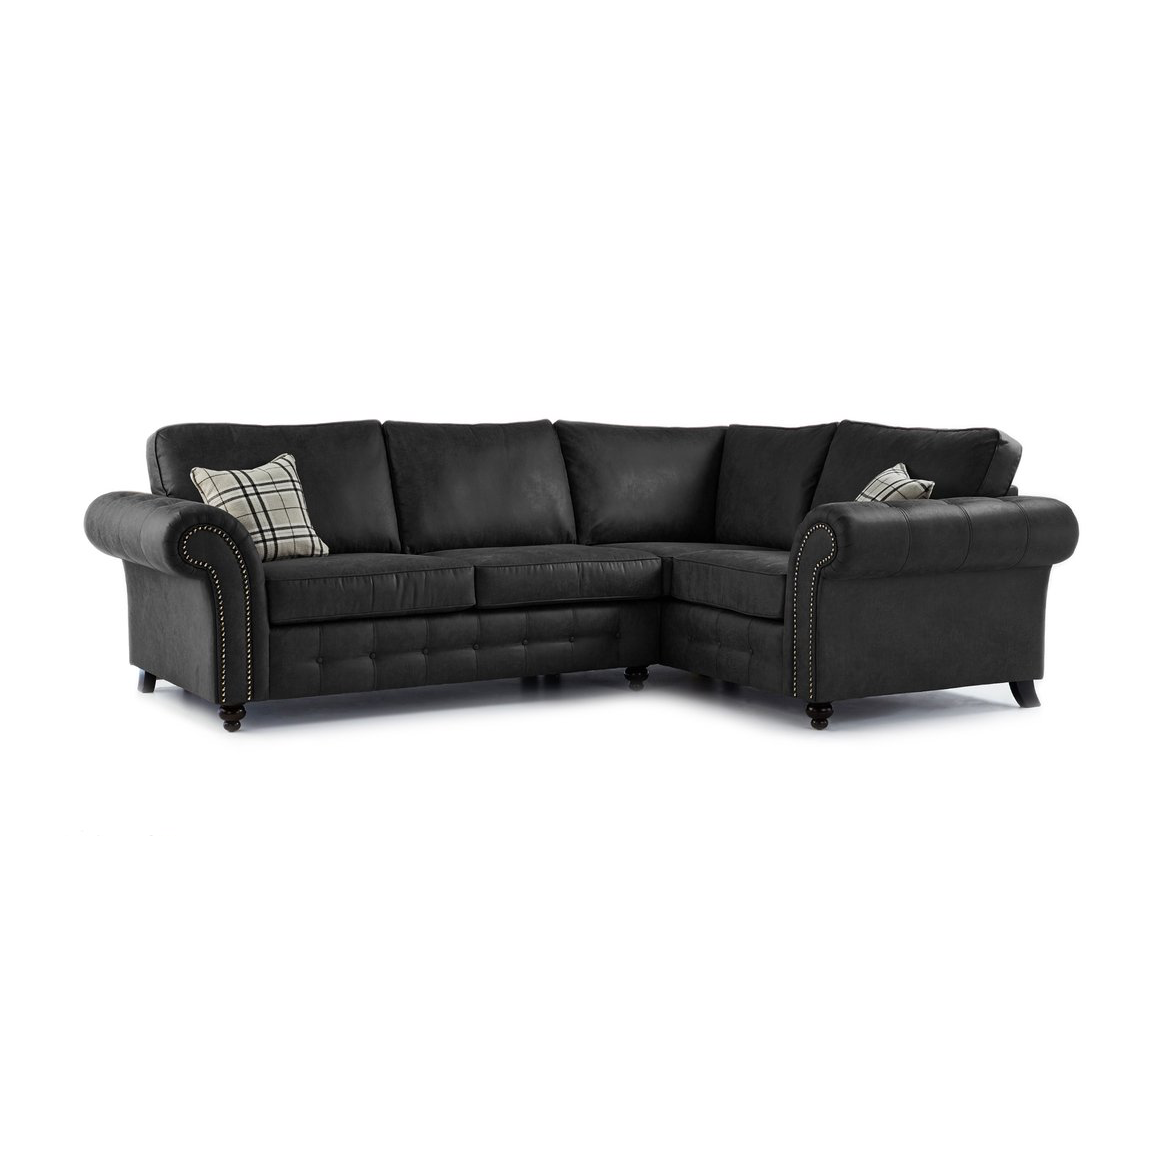 Oakland Faux Leather Right Hand Corner Sofa in Black